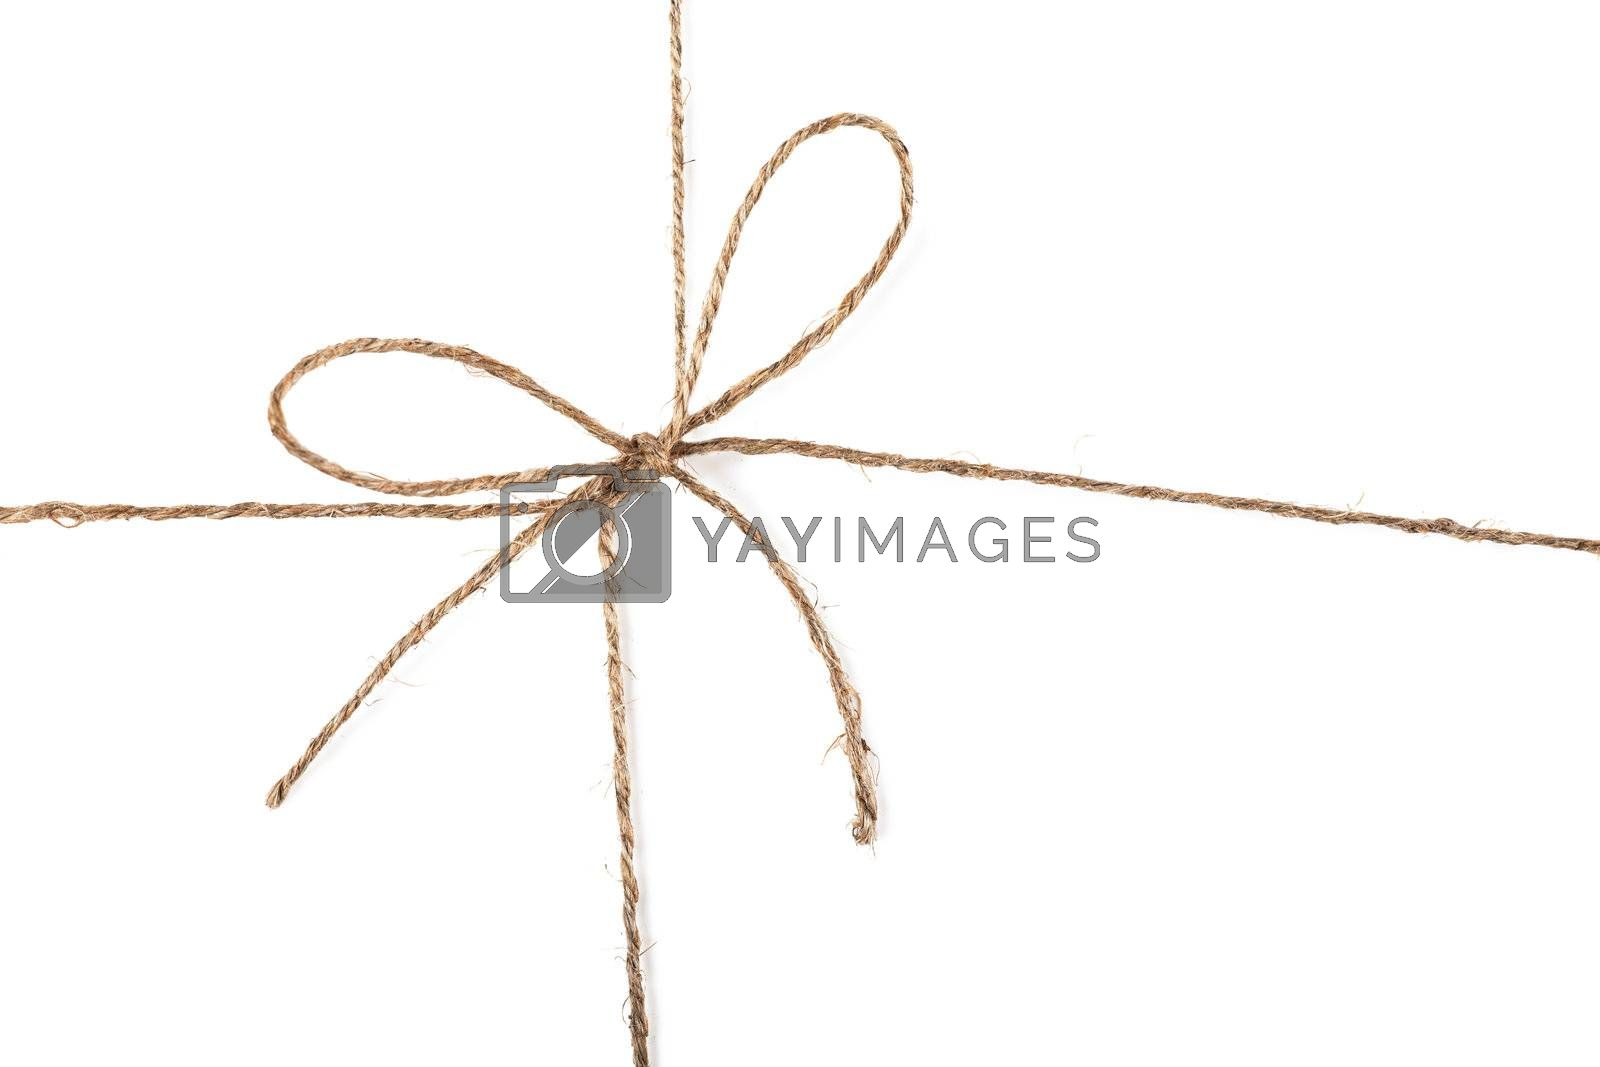 Closeup view of string knot over white background